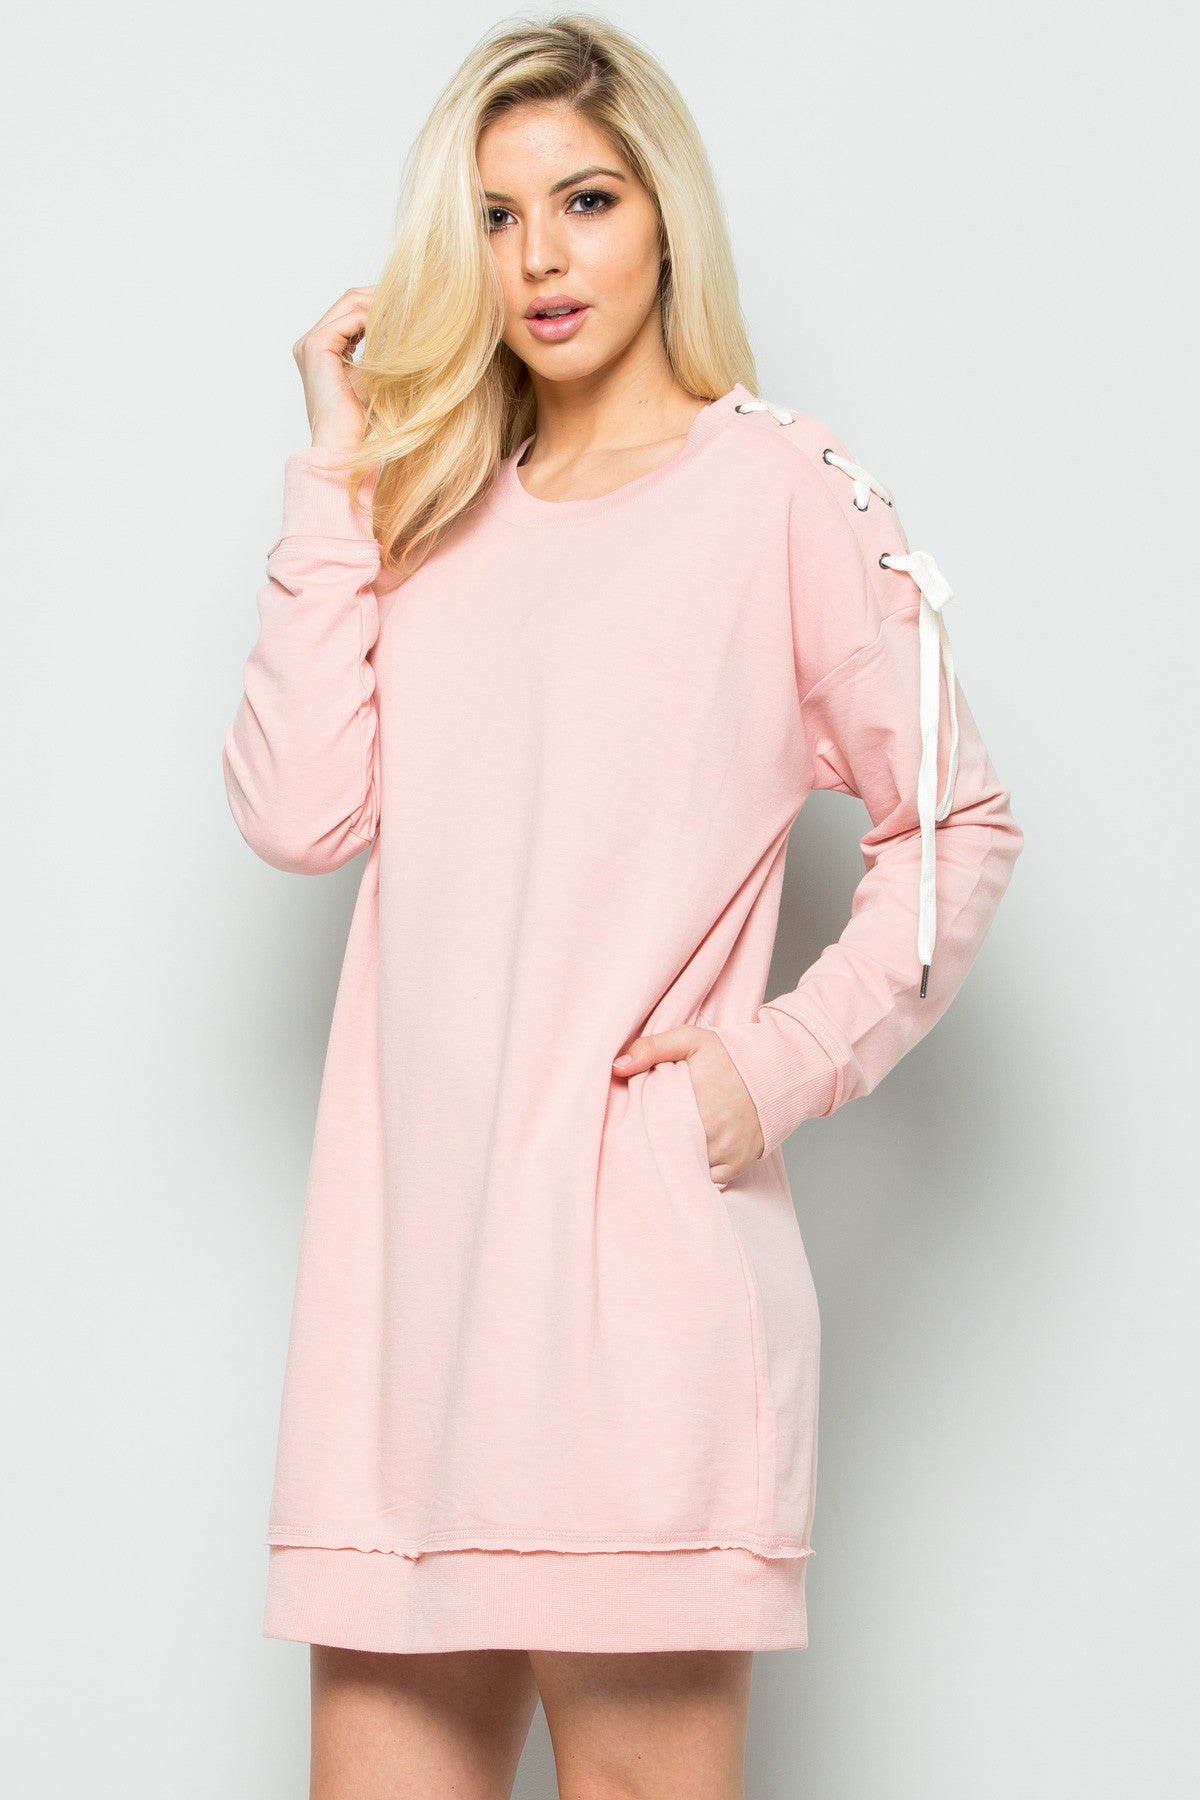 Shoulder Lace Up Sweater Dress in Blush - Dresses - My Yuccie - 2